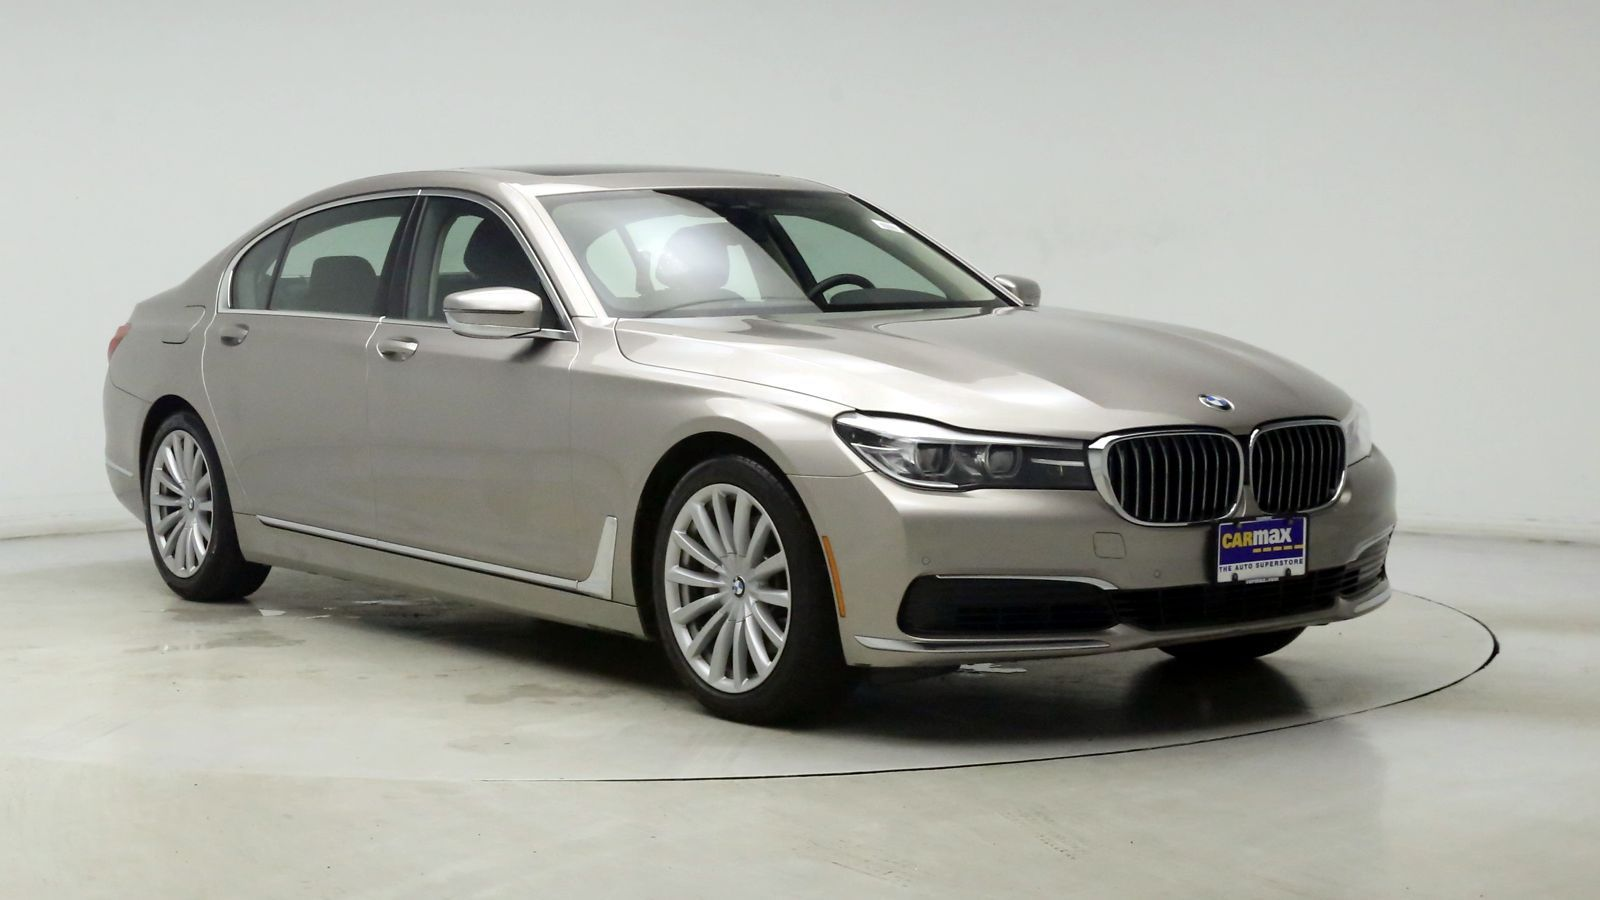 Used 2019 Bmw 740 In Laurel Maryland Carmax Bmw 740 Bmw Sell Car